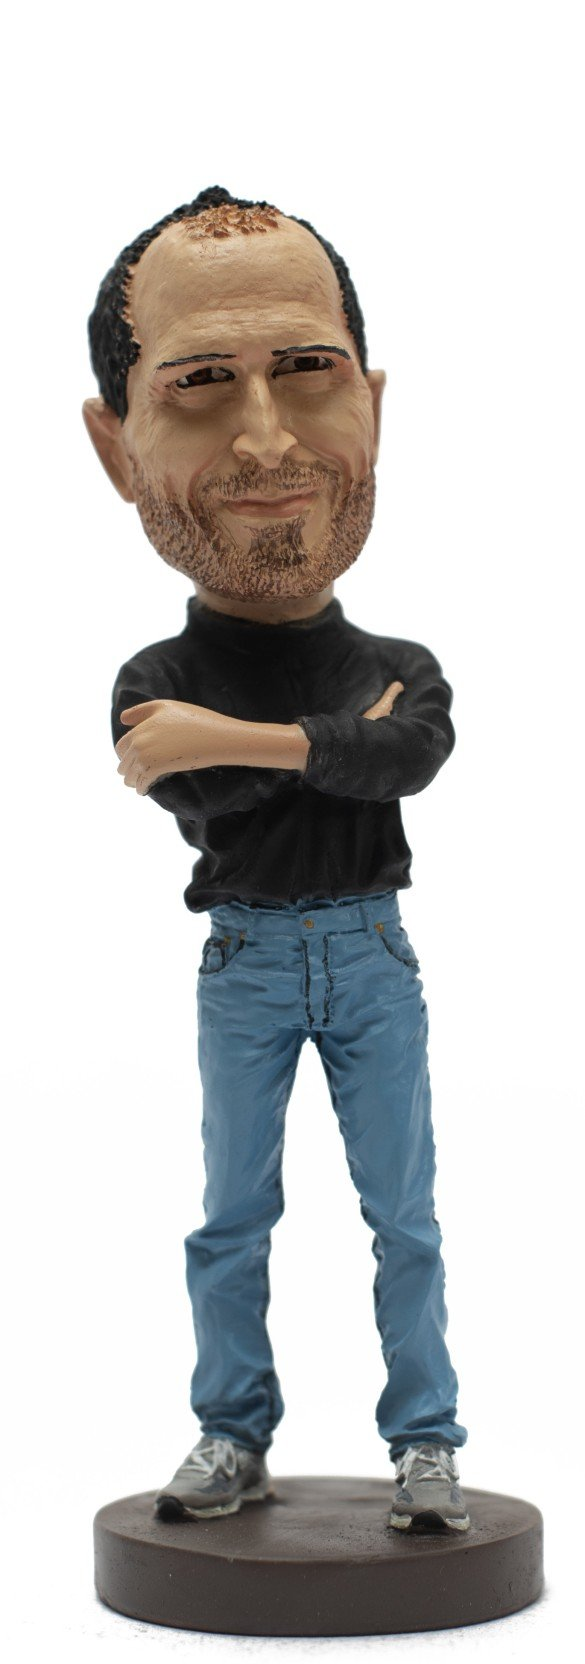 STEVE JOBS BOBBLE HEAD - Art Galore®